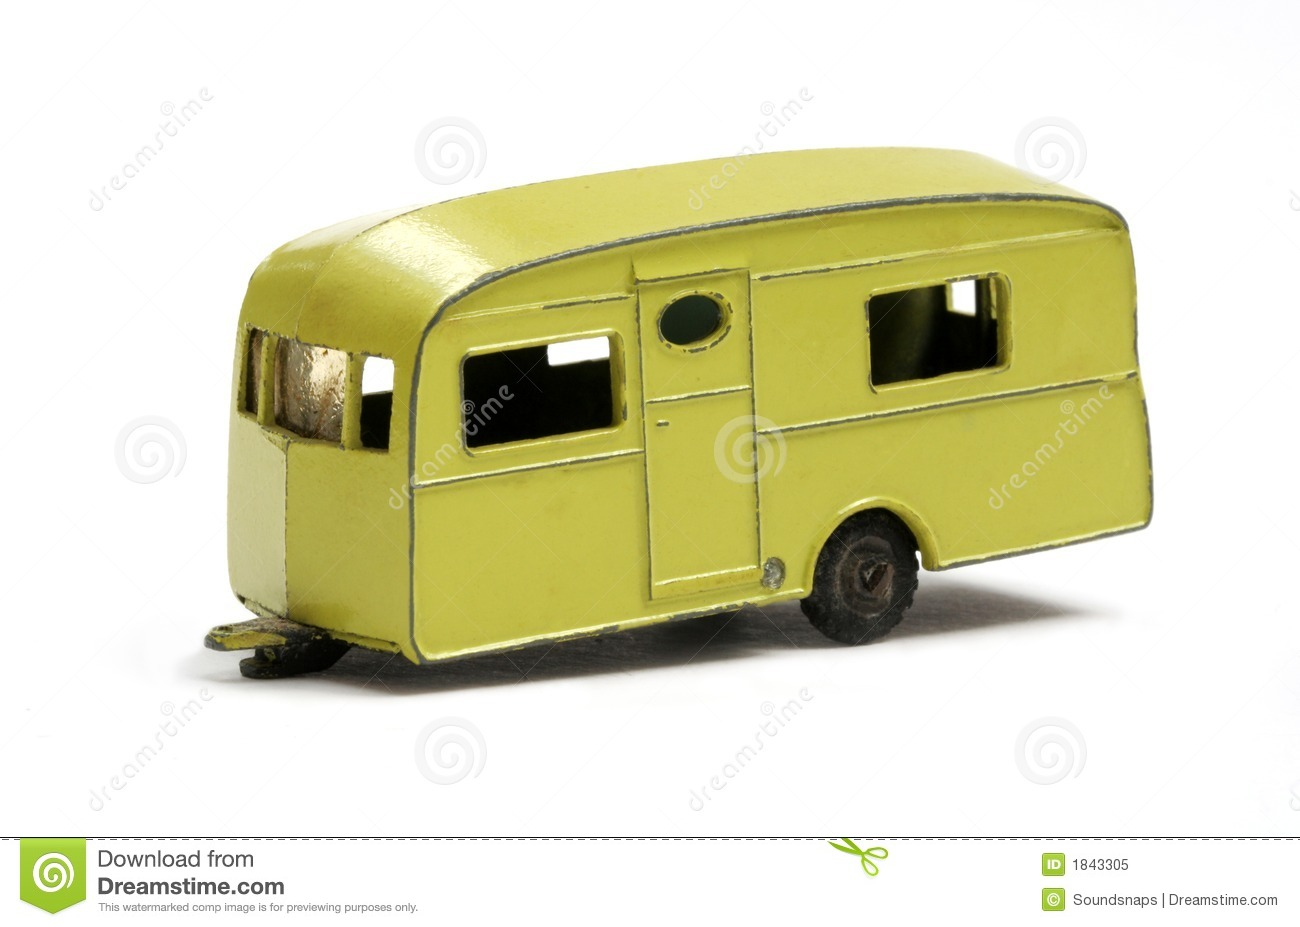 Caravana Retro Toy Model Caravan Royalty Free Stock Photo - Image: 1843305